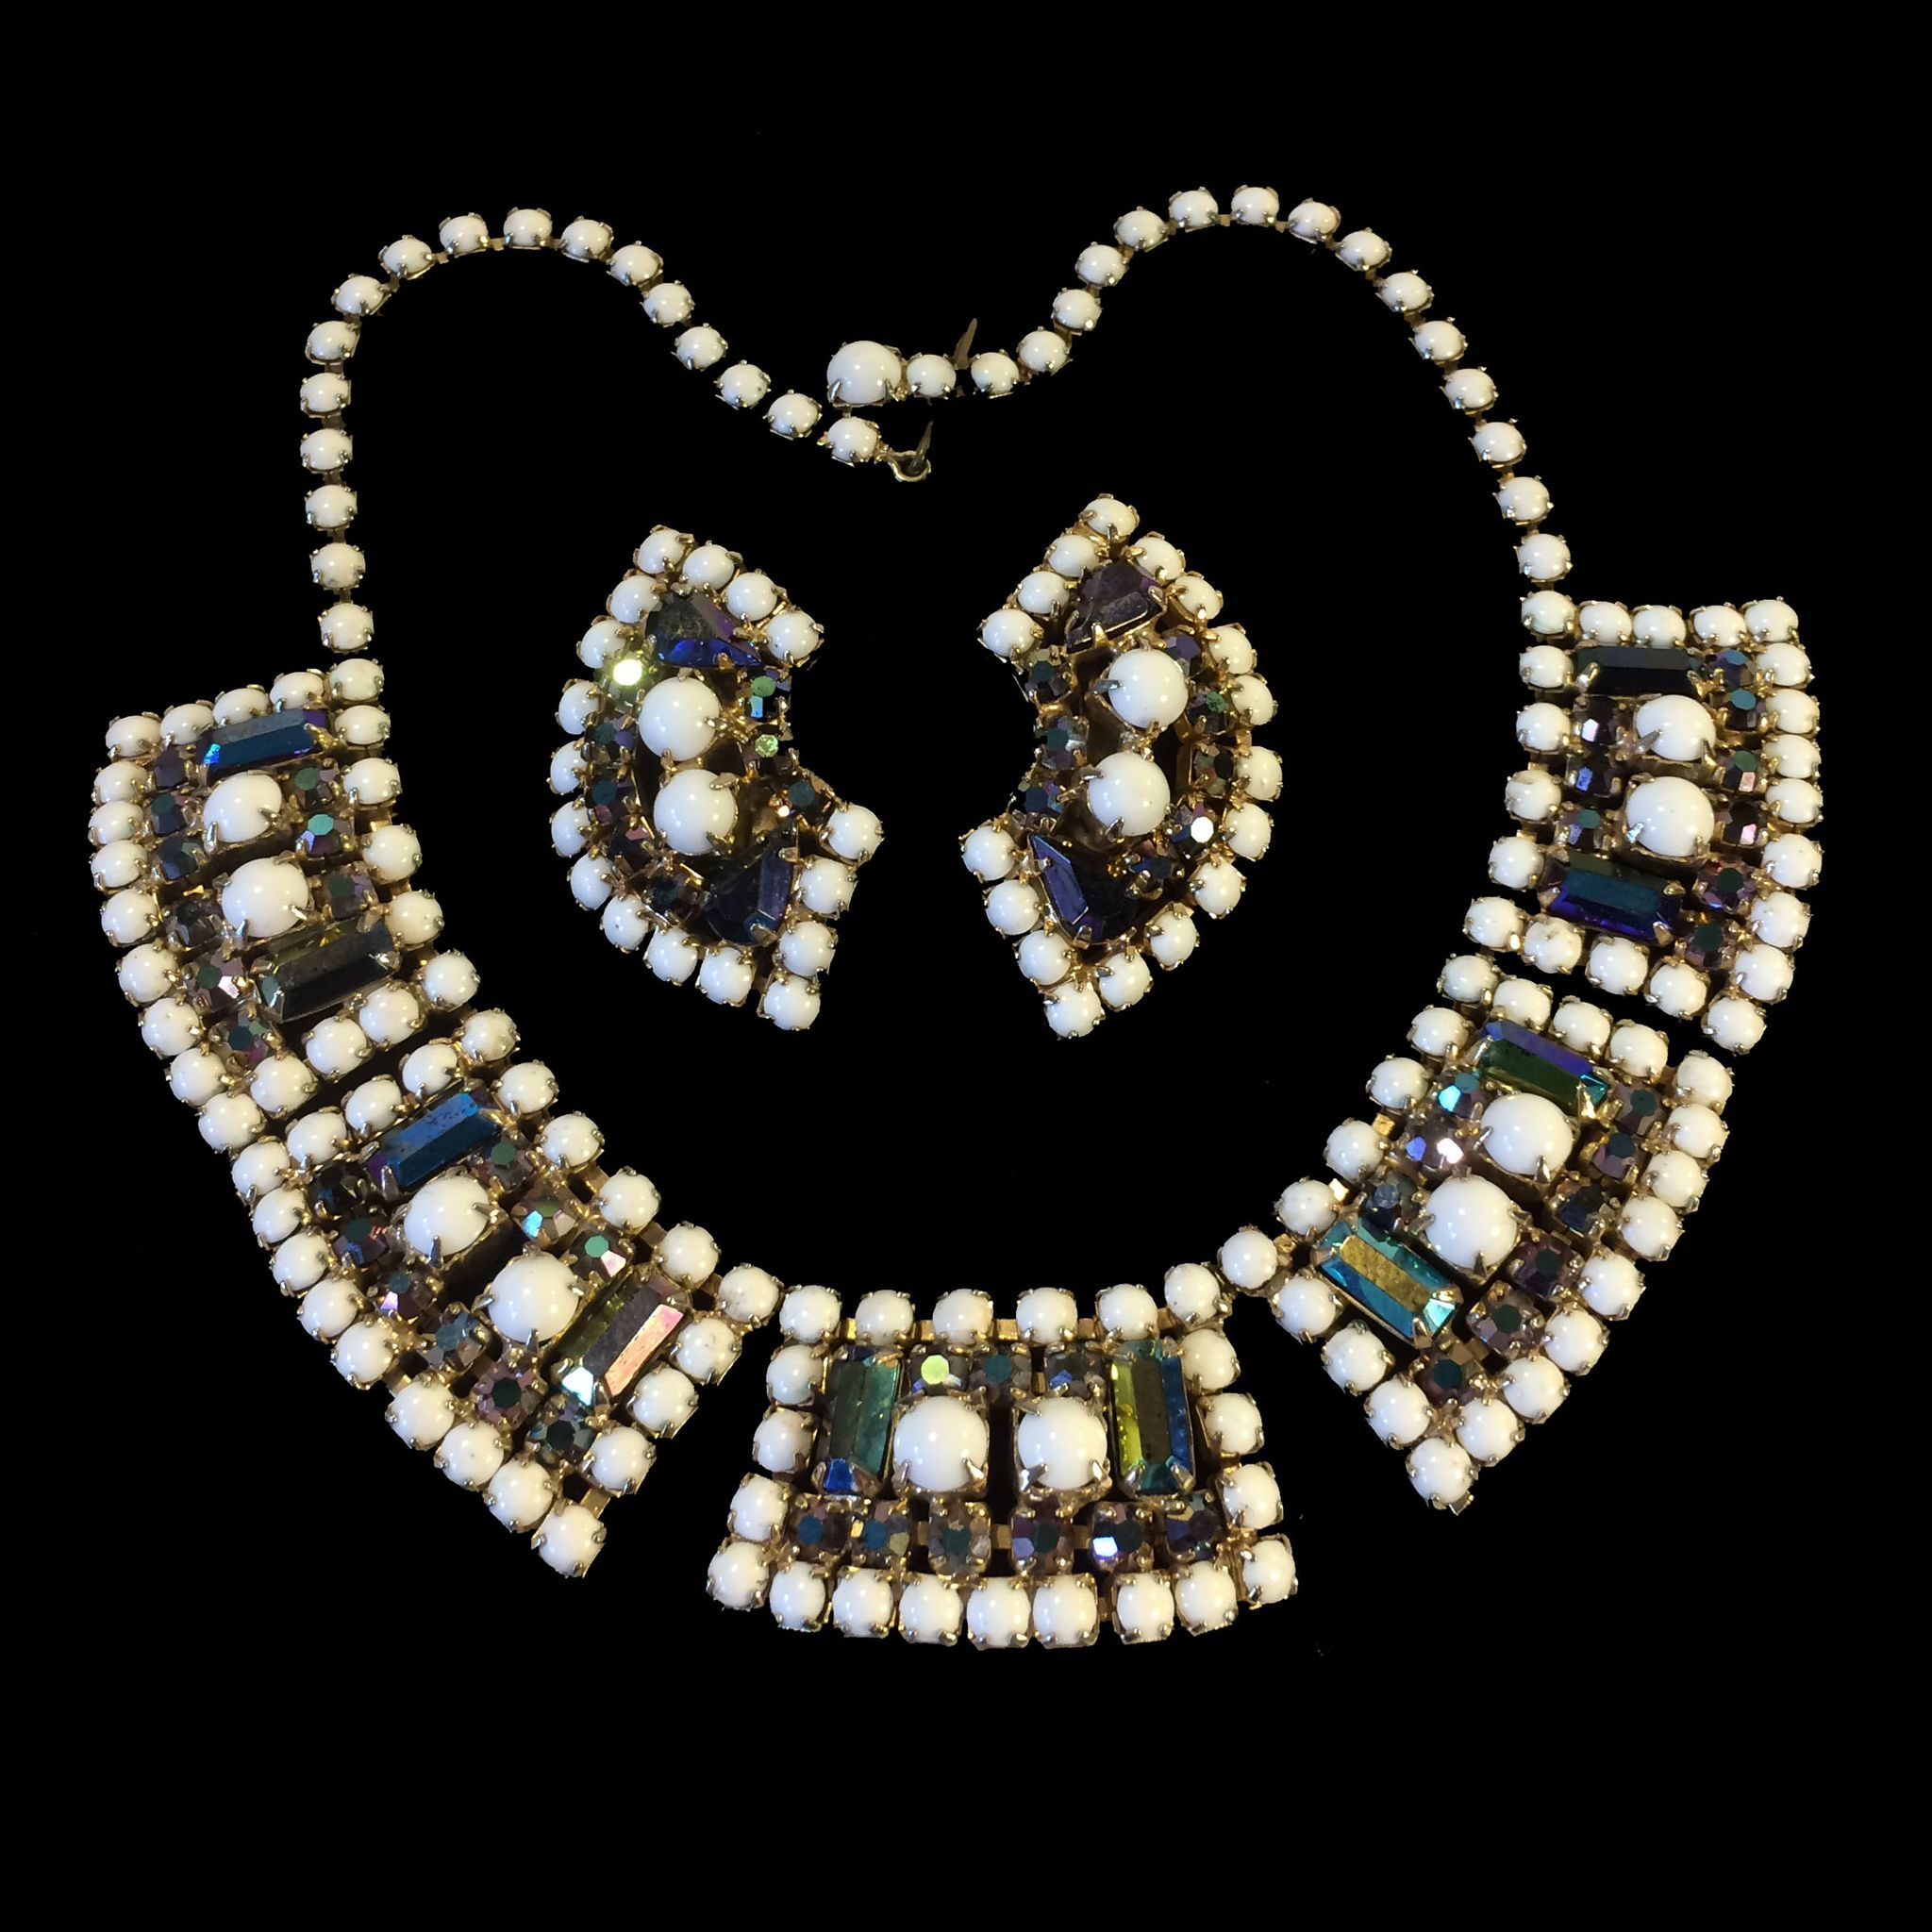 White Milk Glass and Vitriol Aurora Borealis Rhinestone Necklace and Earrings